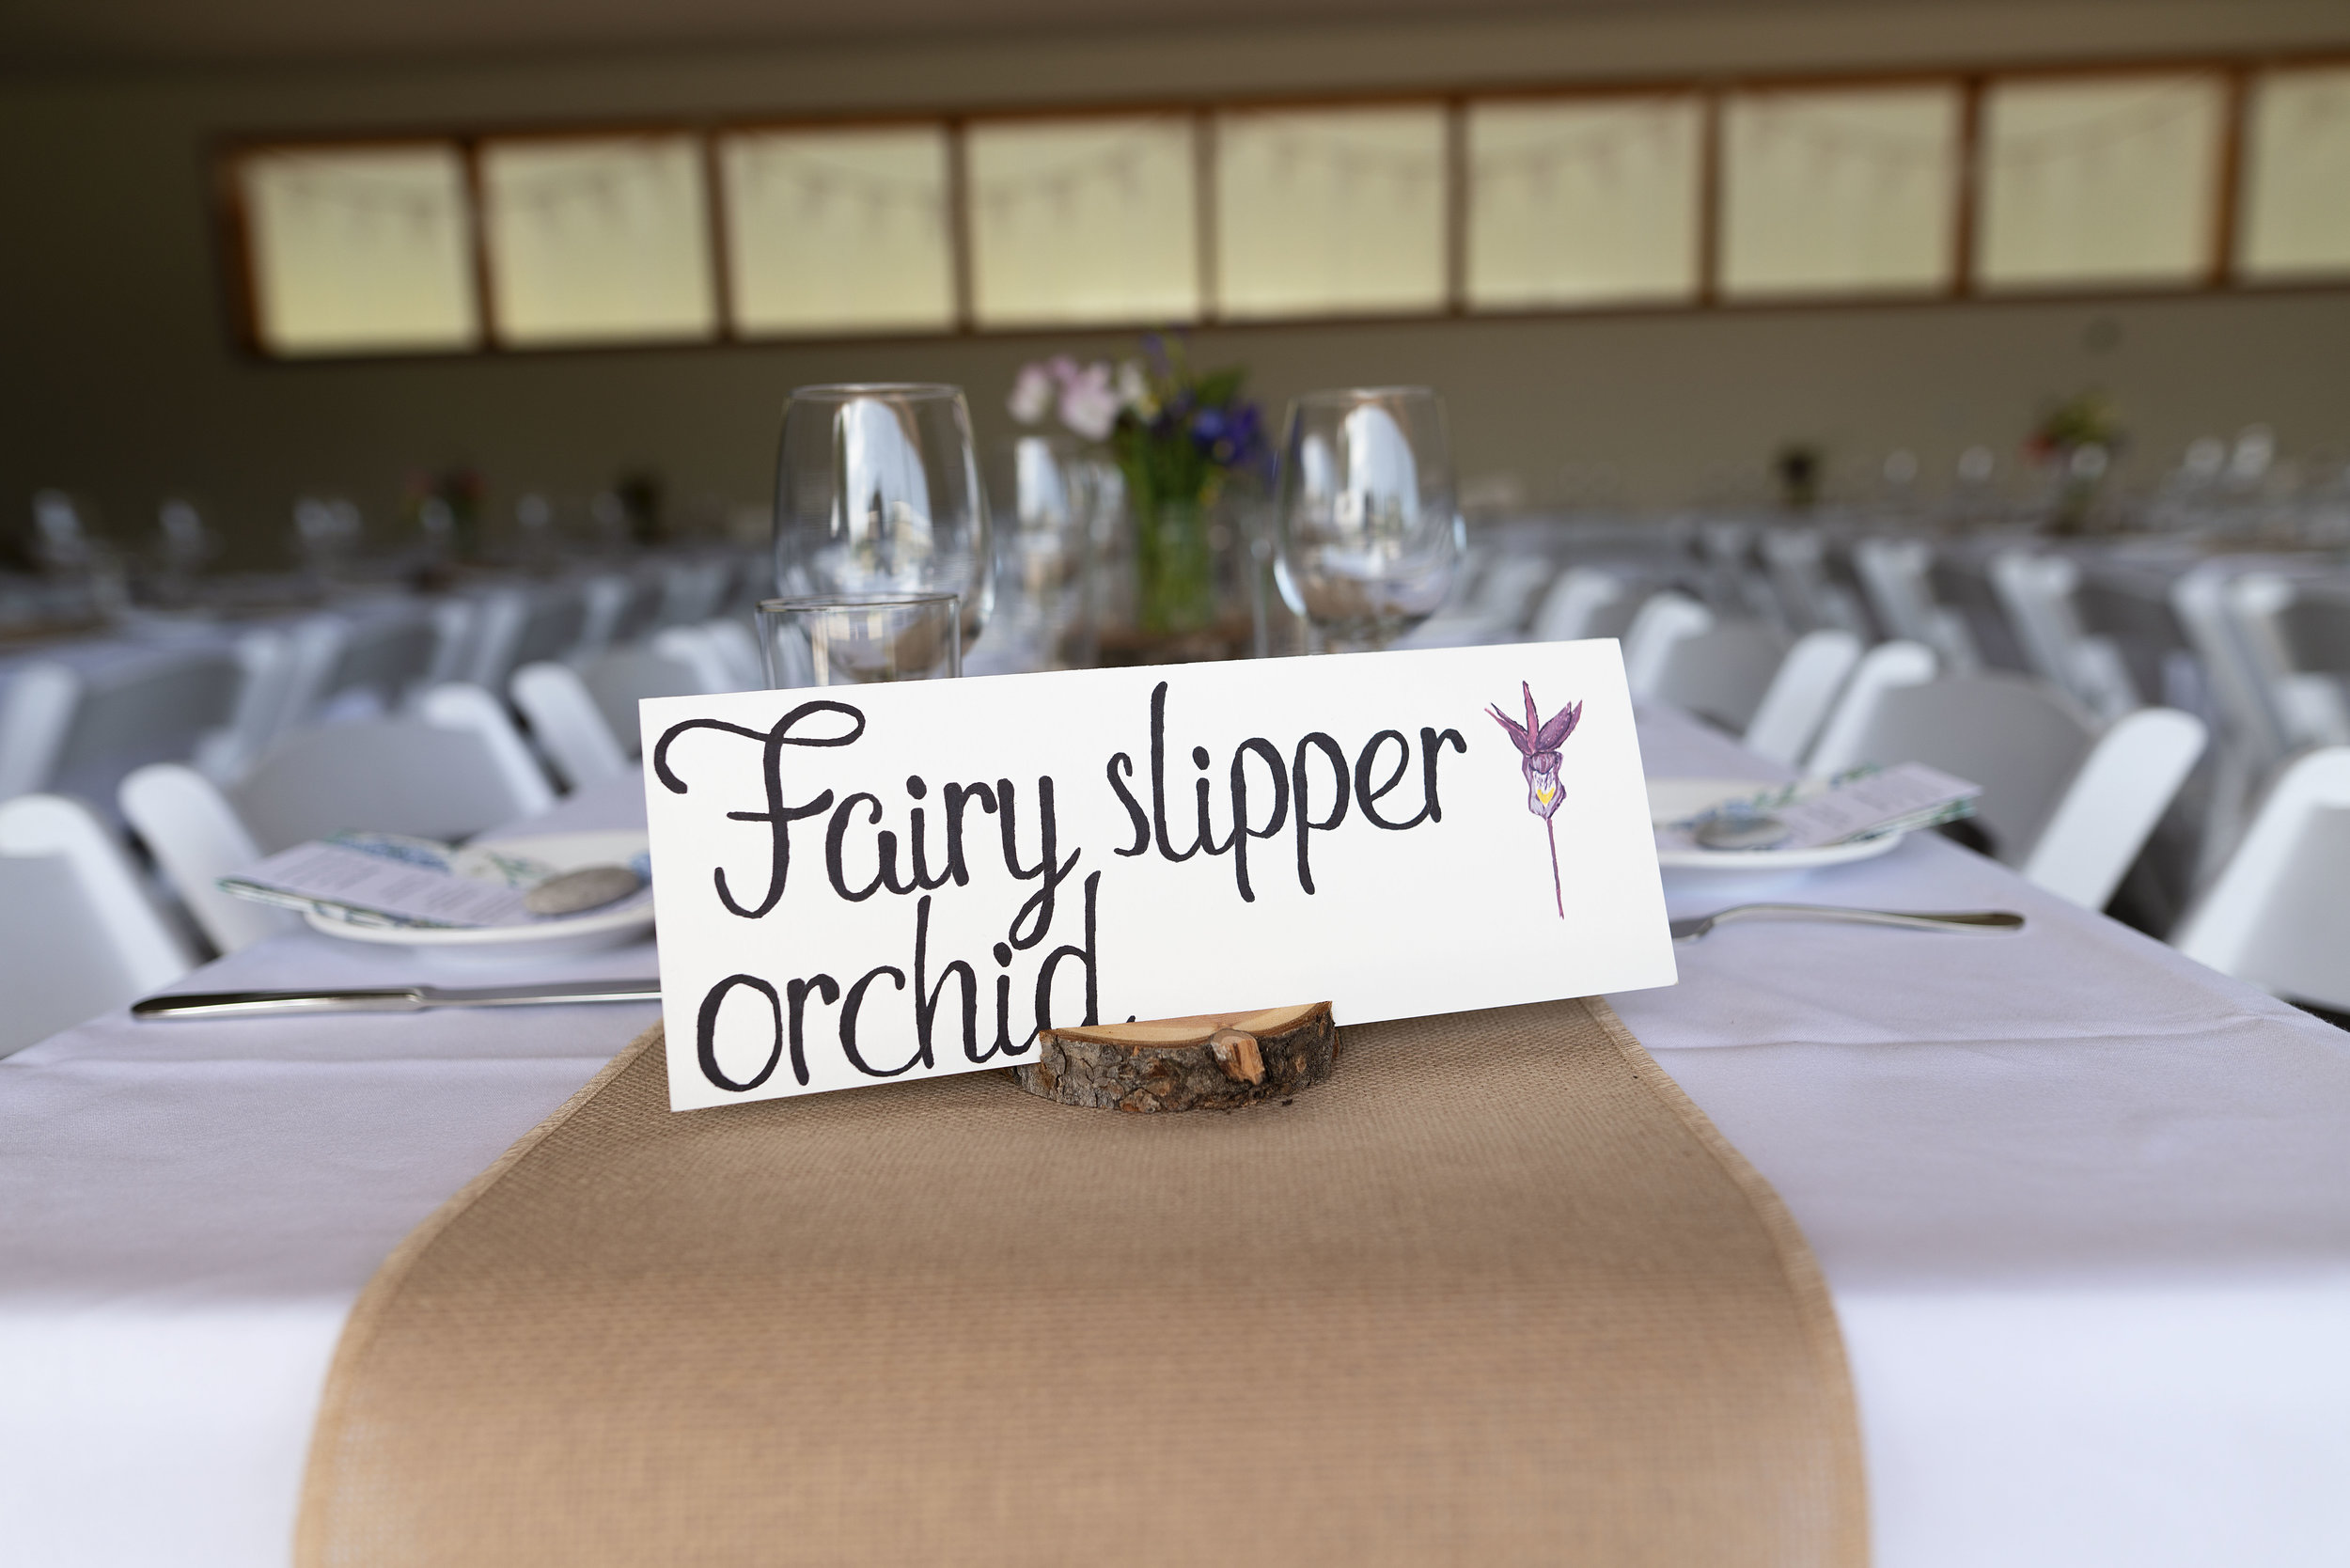 fairy sipper orchid.jpg